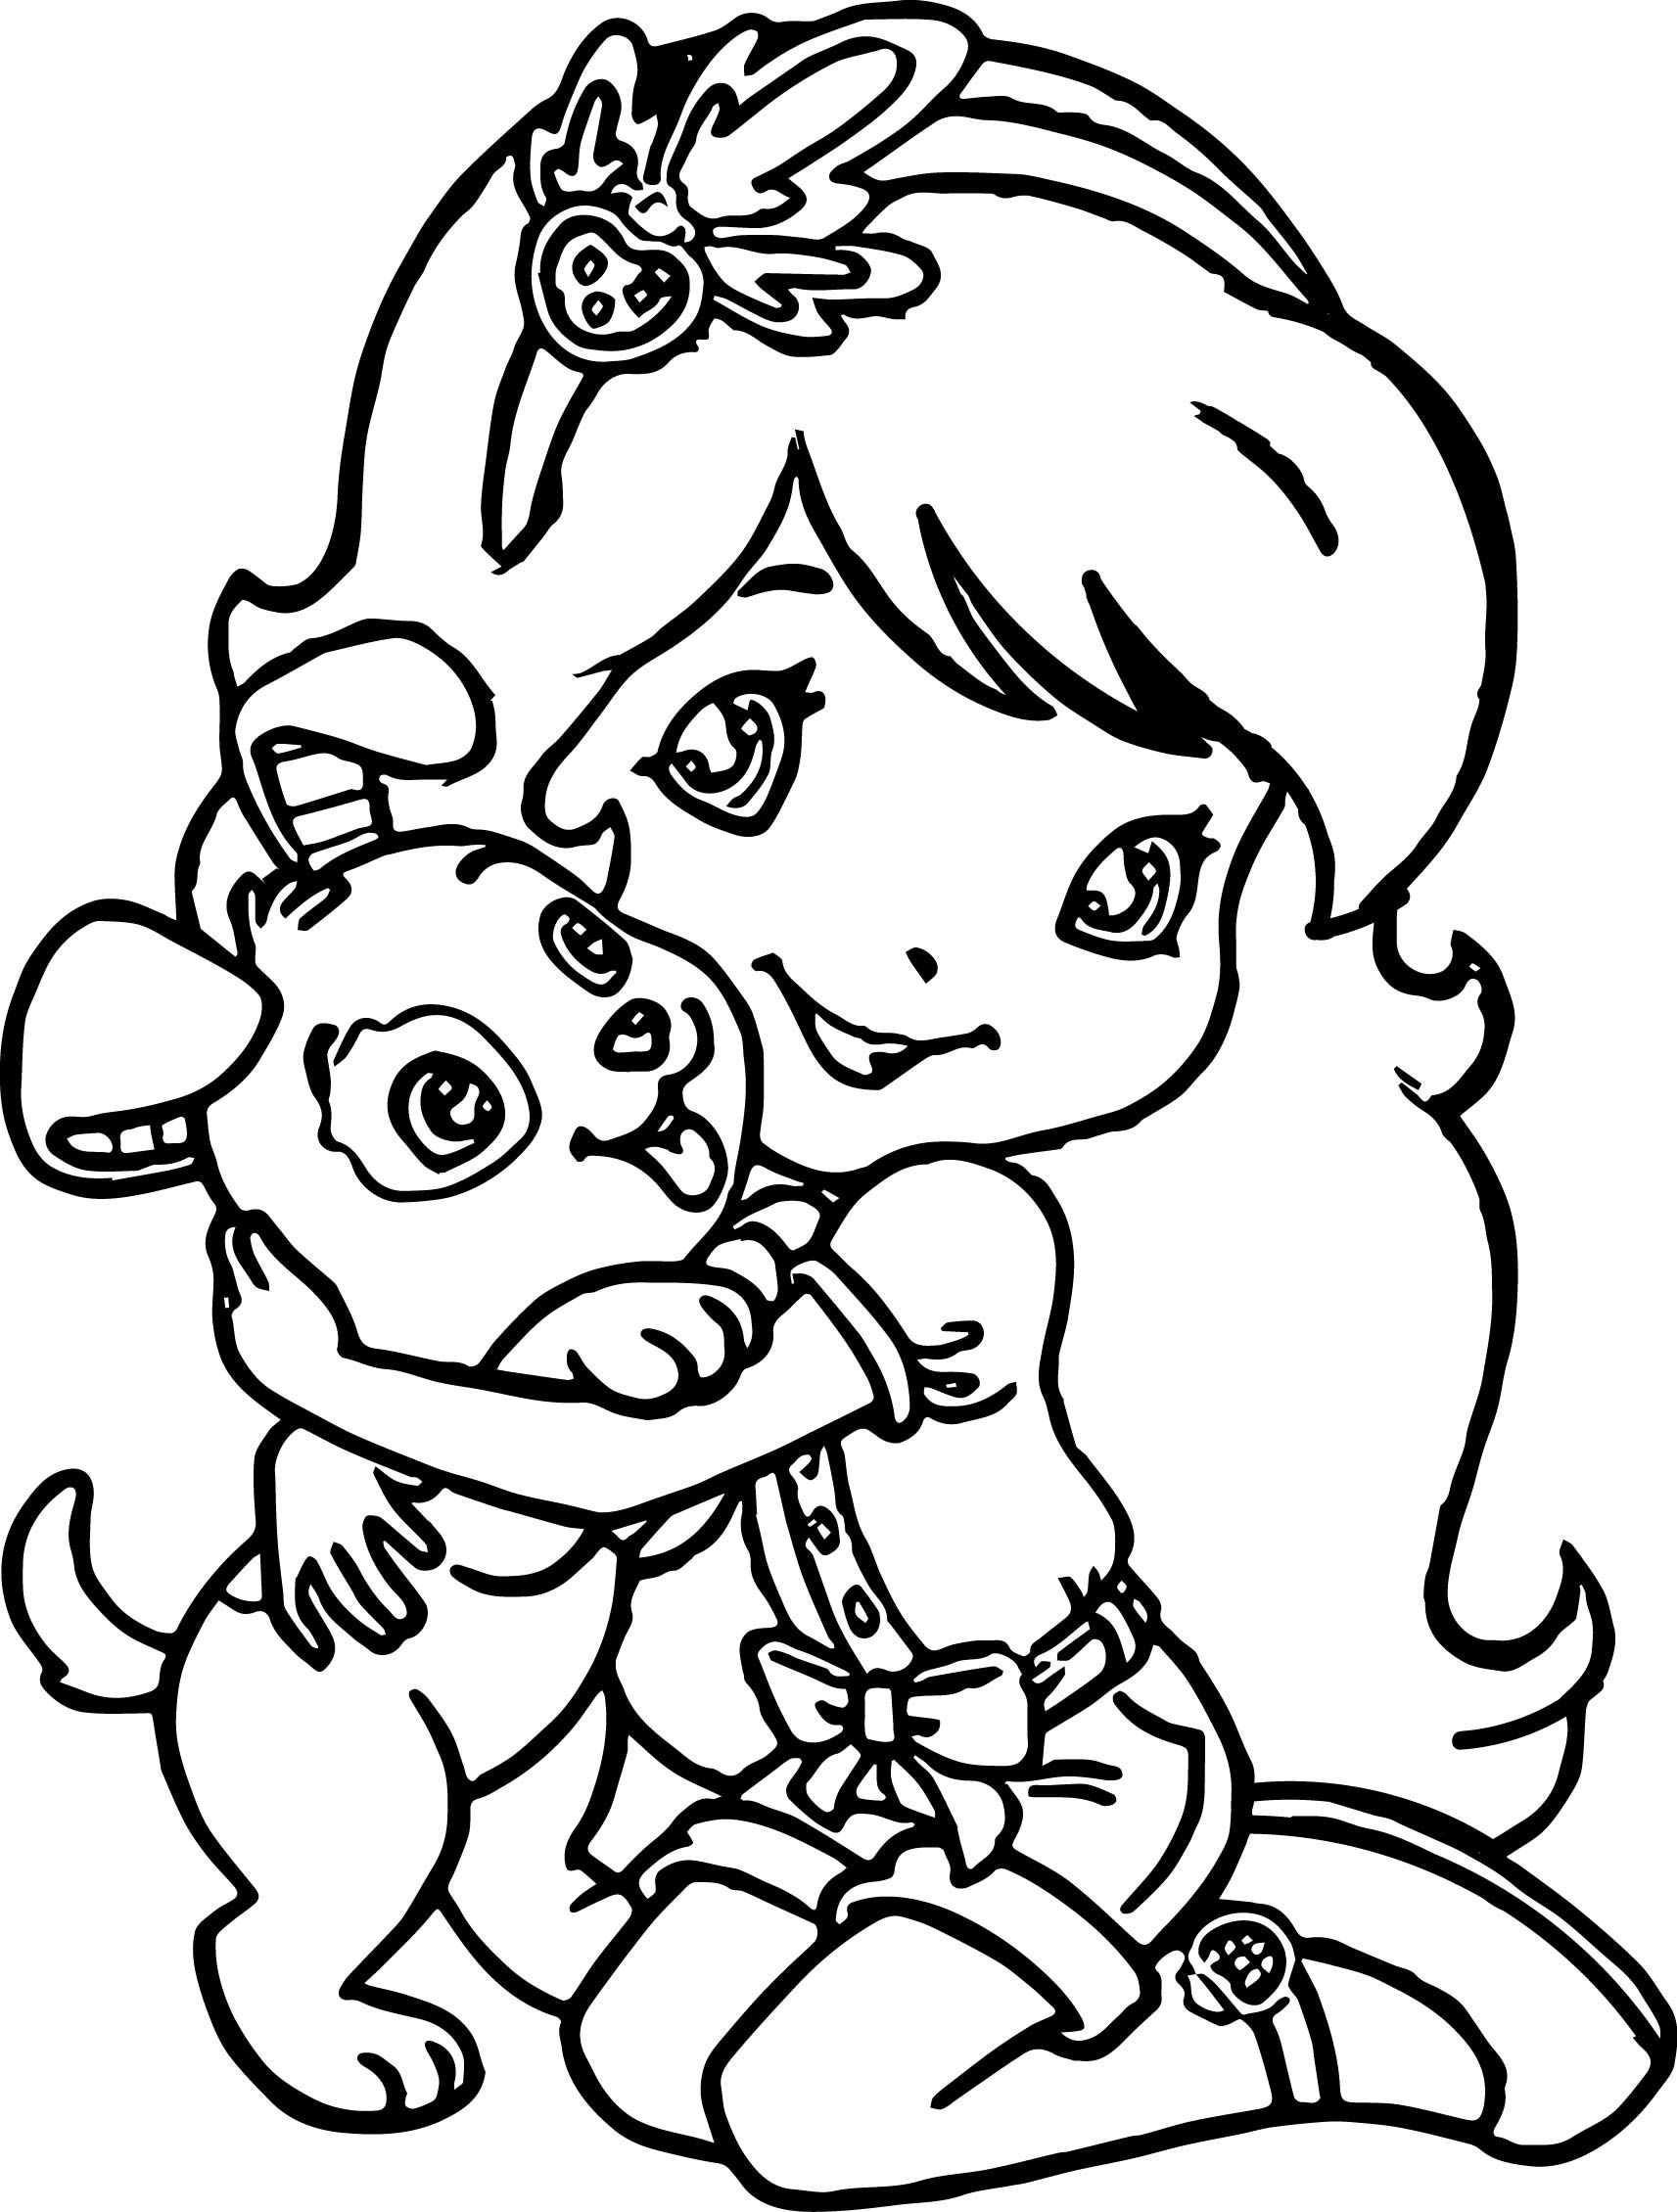 What You Need To Know To Care For Your Dog Continue With The Details At The Image Link Dogstips Puppy Coloring Pages Dog Coloring Page Cute Coloring Pages [ 2260 x 1713 Pixel ]